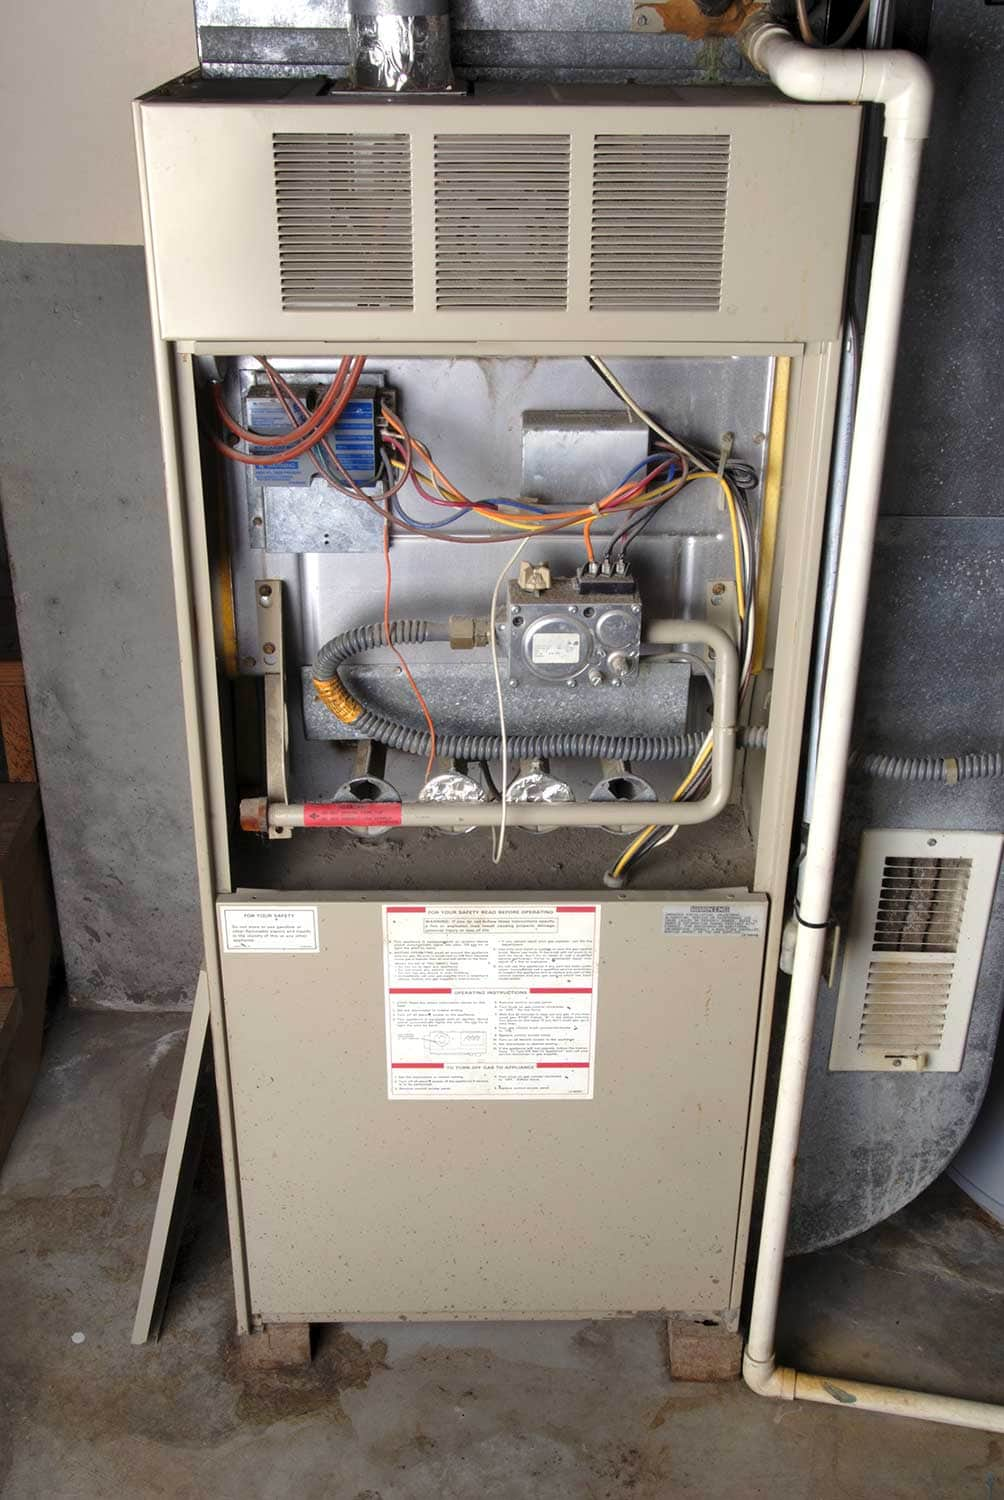 Natural-gas furnace in a typical basement installation of a home